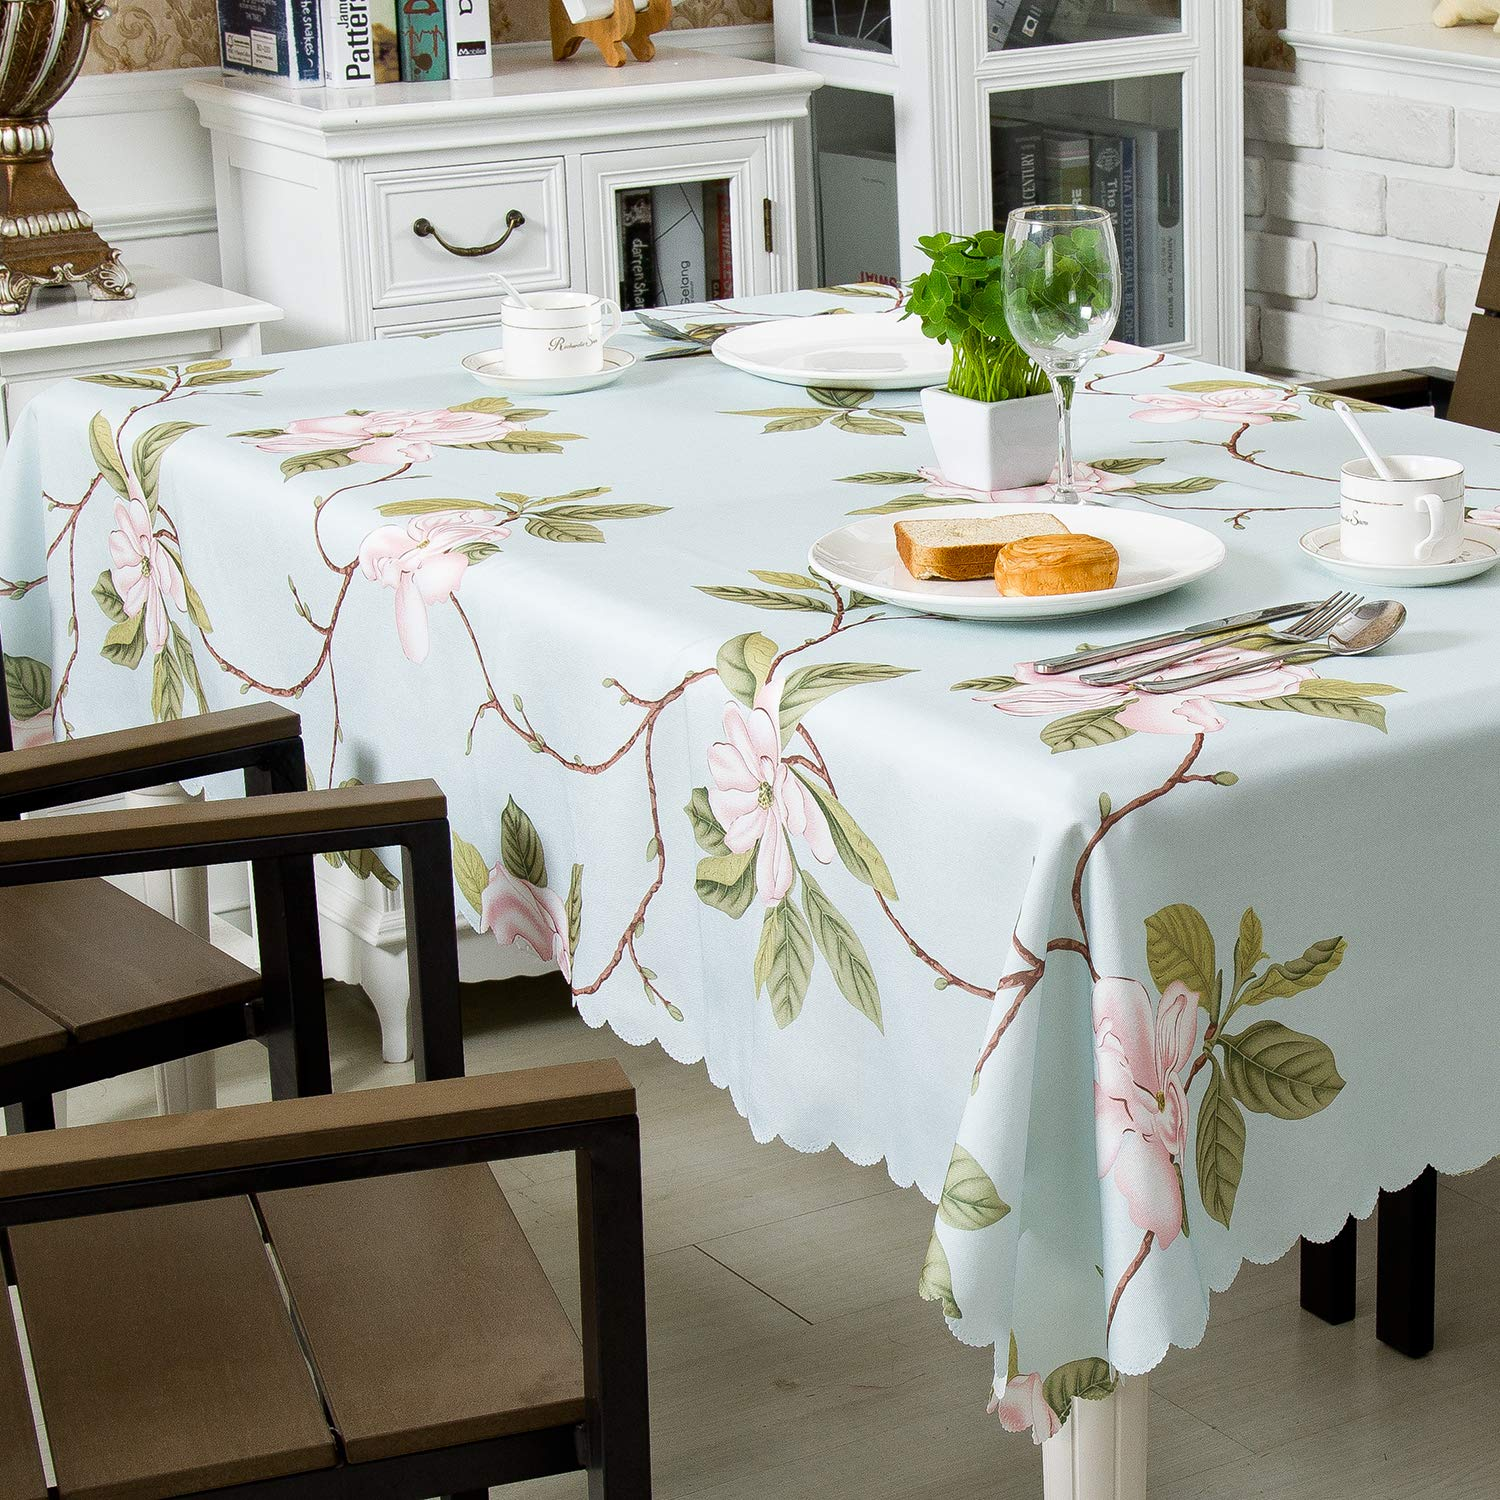 """Hewaba Rectangle Printed Tablecloth - (60"""" x 104"""") Polyester Fabric Washable Table Cover, Seats 8-10 People, Wrinkle Free, Oil-Proof/Waterproof Tabletop Protector for Kitchen Dinning Party - Rose"""